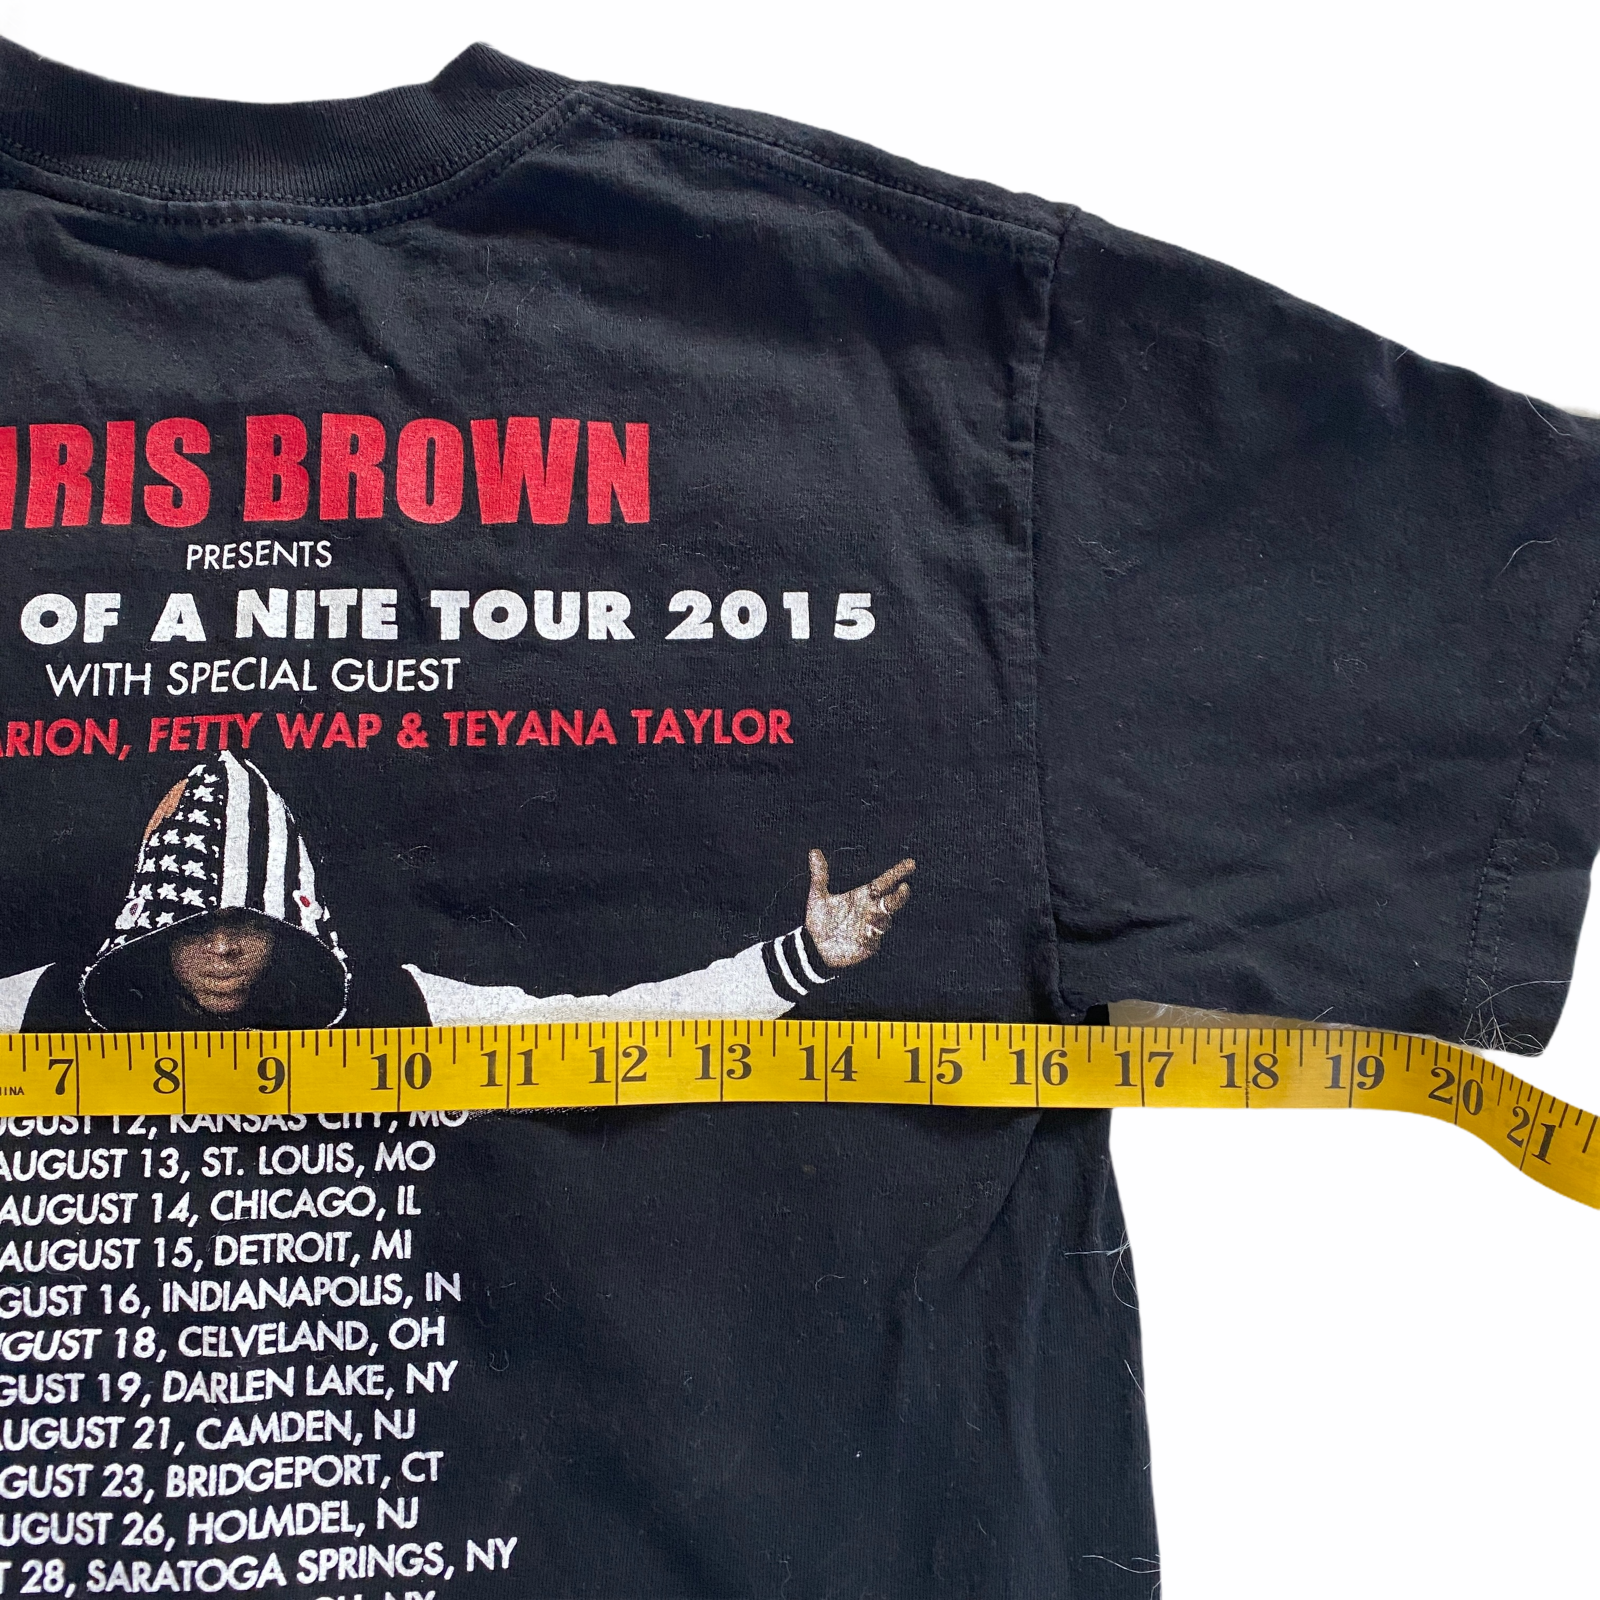 CHRIS BROWN KID INK OMARION T Shirt Small HELL OF A NIGHT TOUR 2015 Rap Hip Hop - $22.49